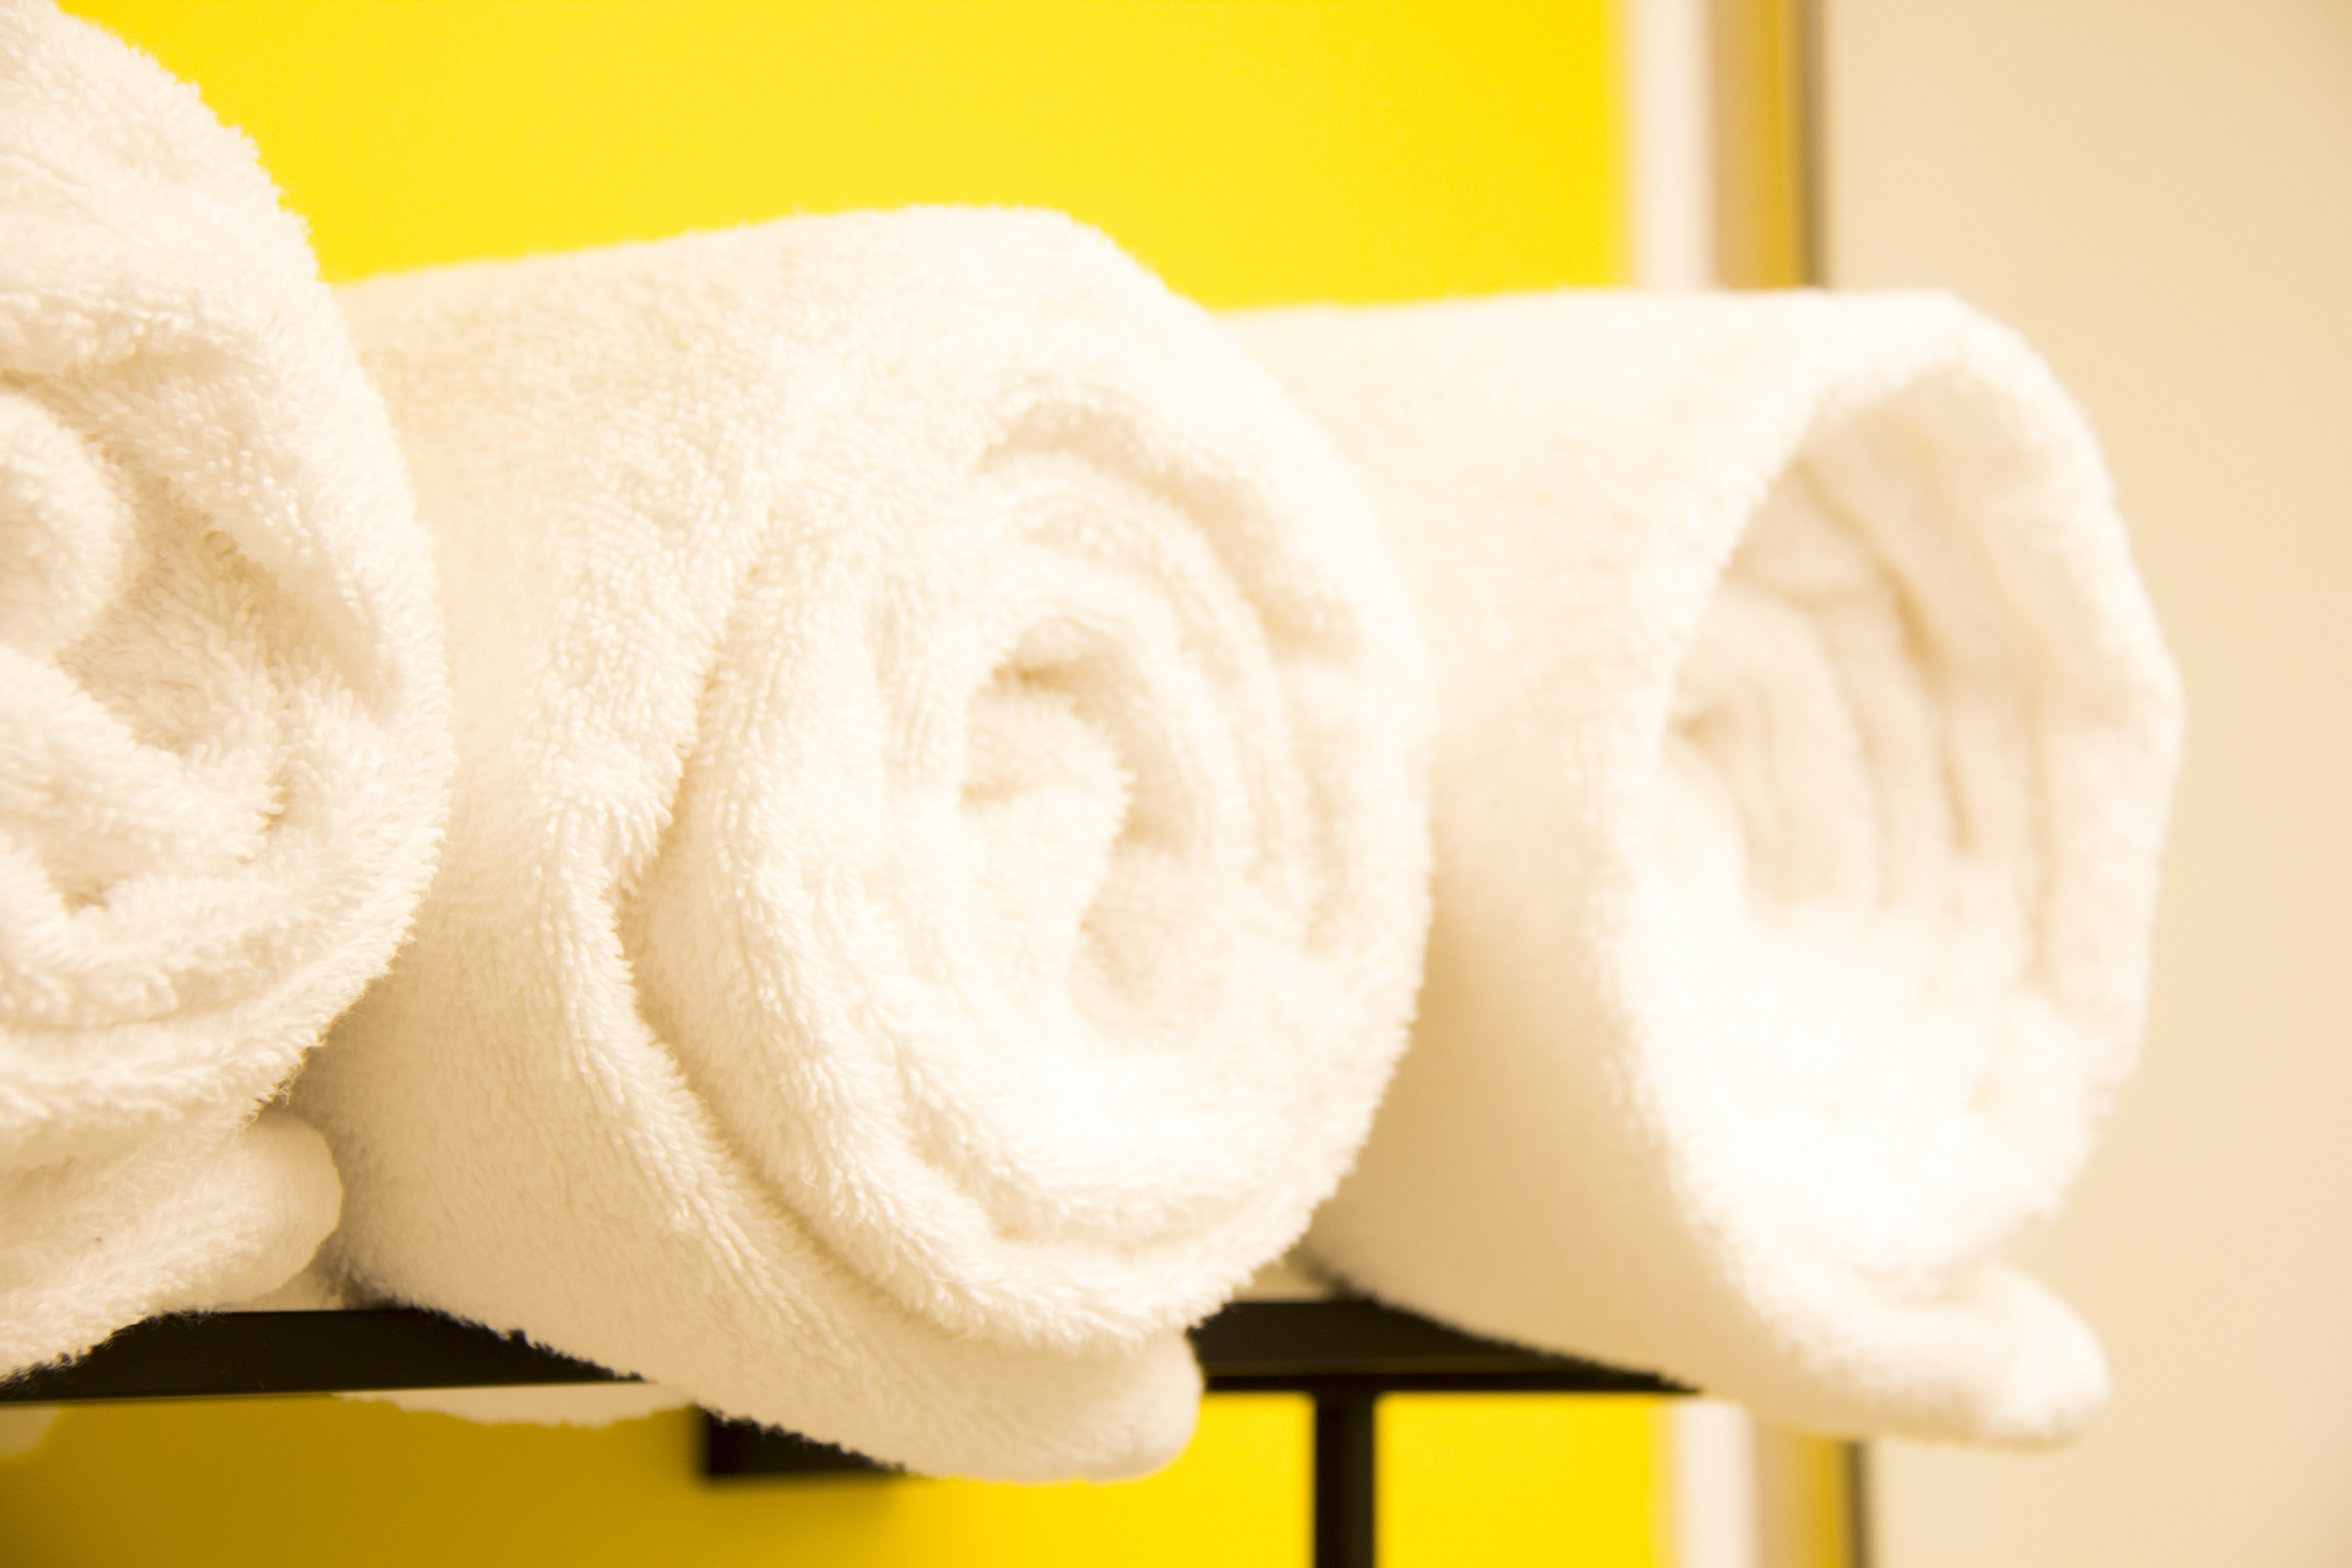 Three white towels rolled up